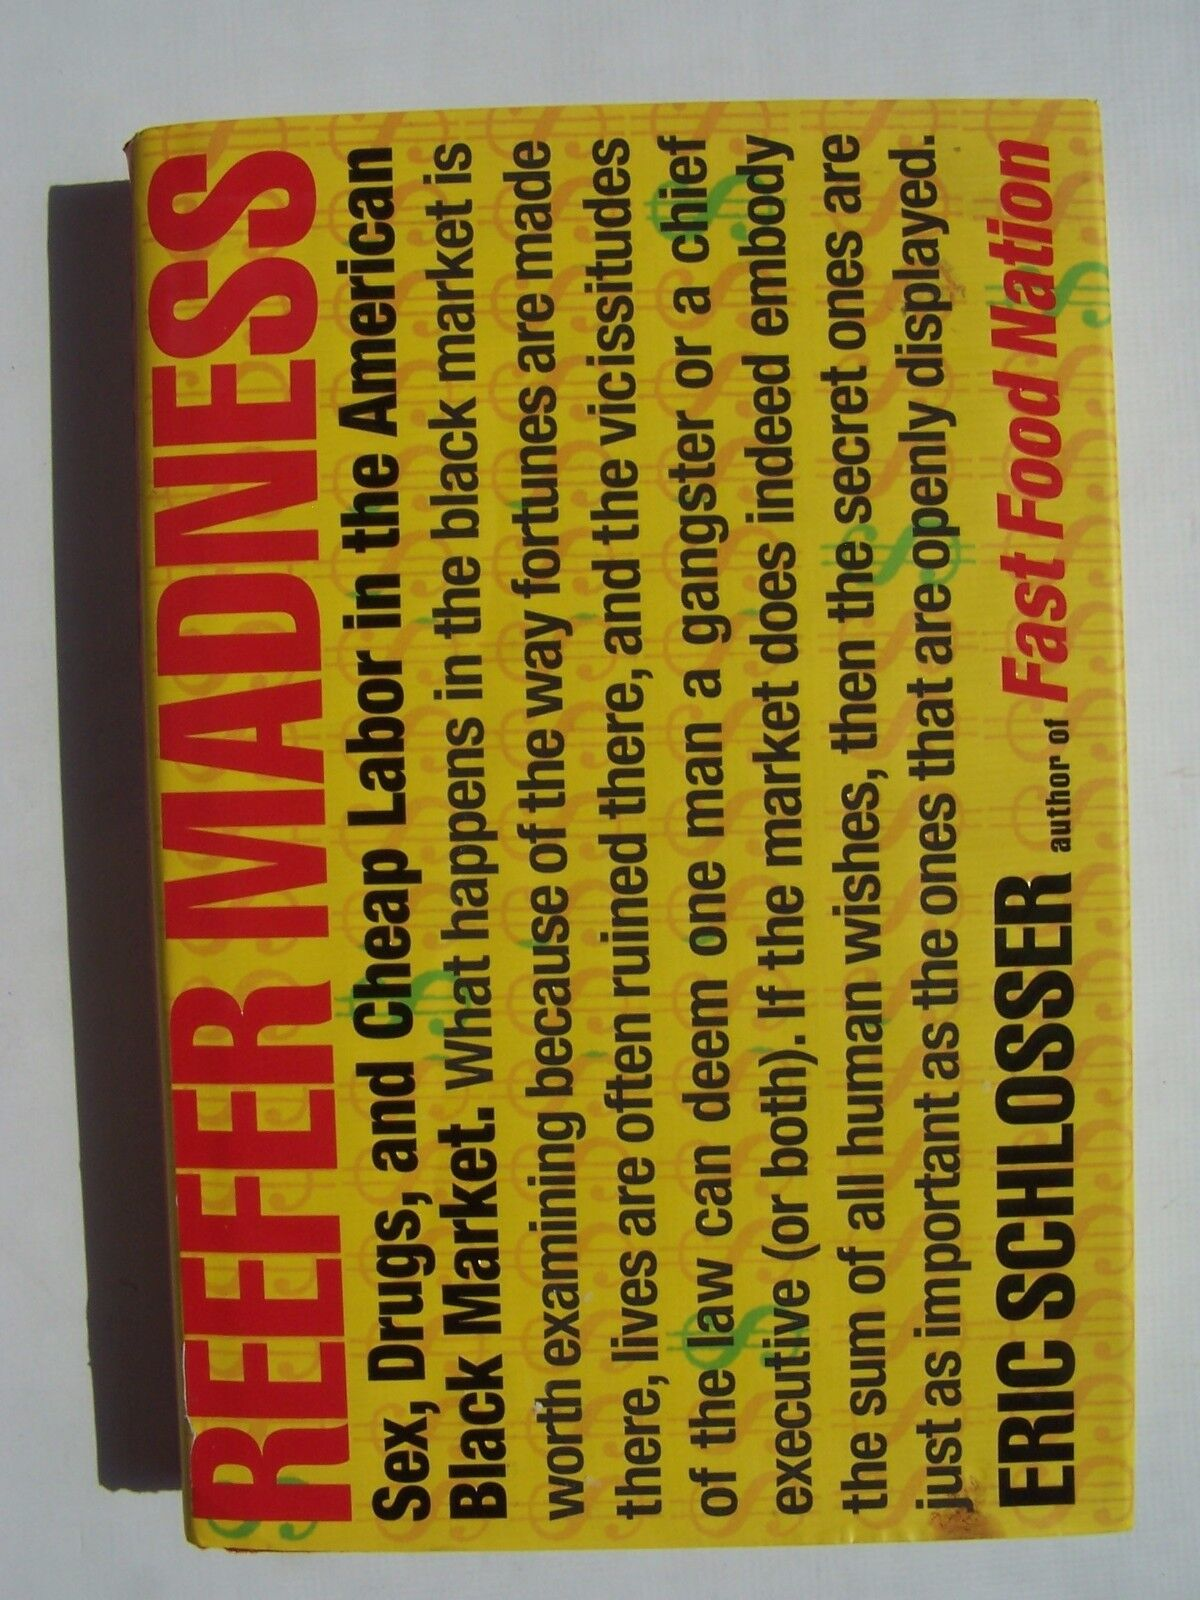 Reefer Madness Sex Drugs and Cheap Labor in the America